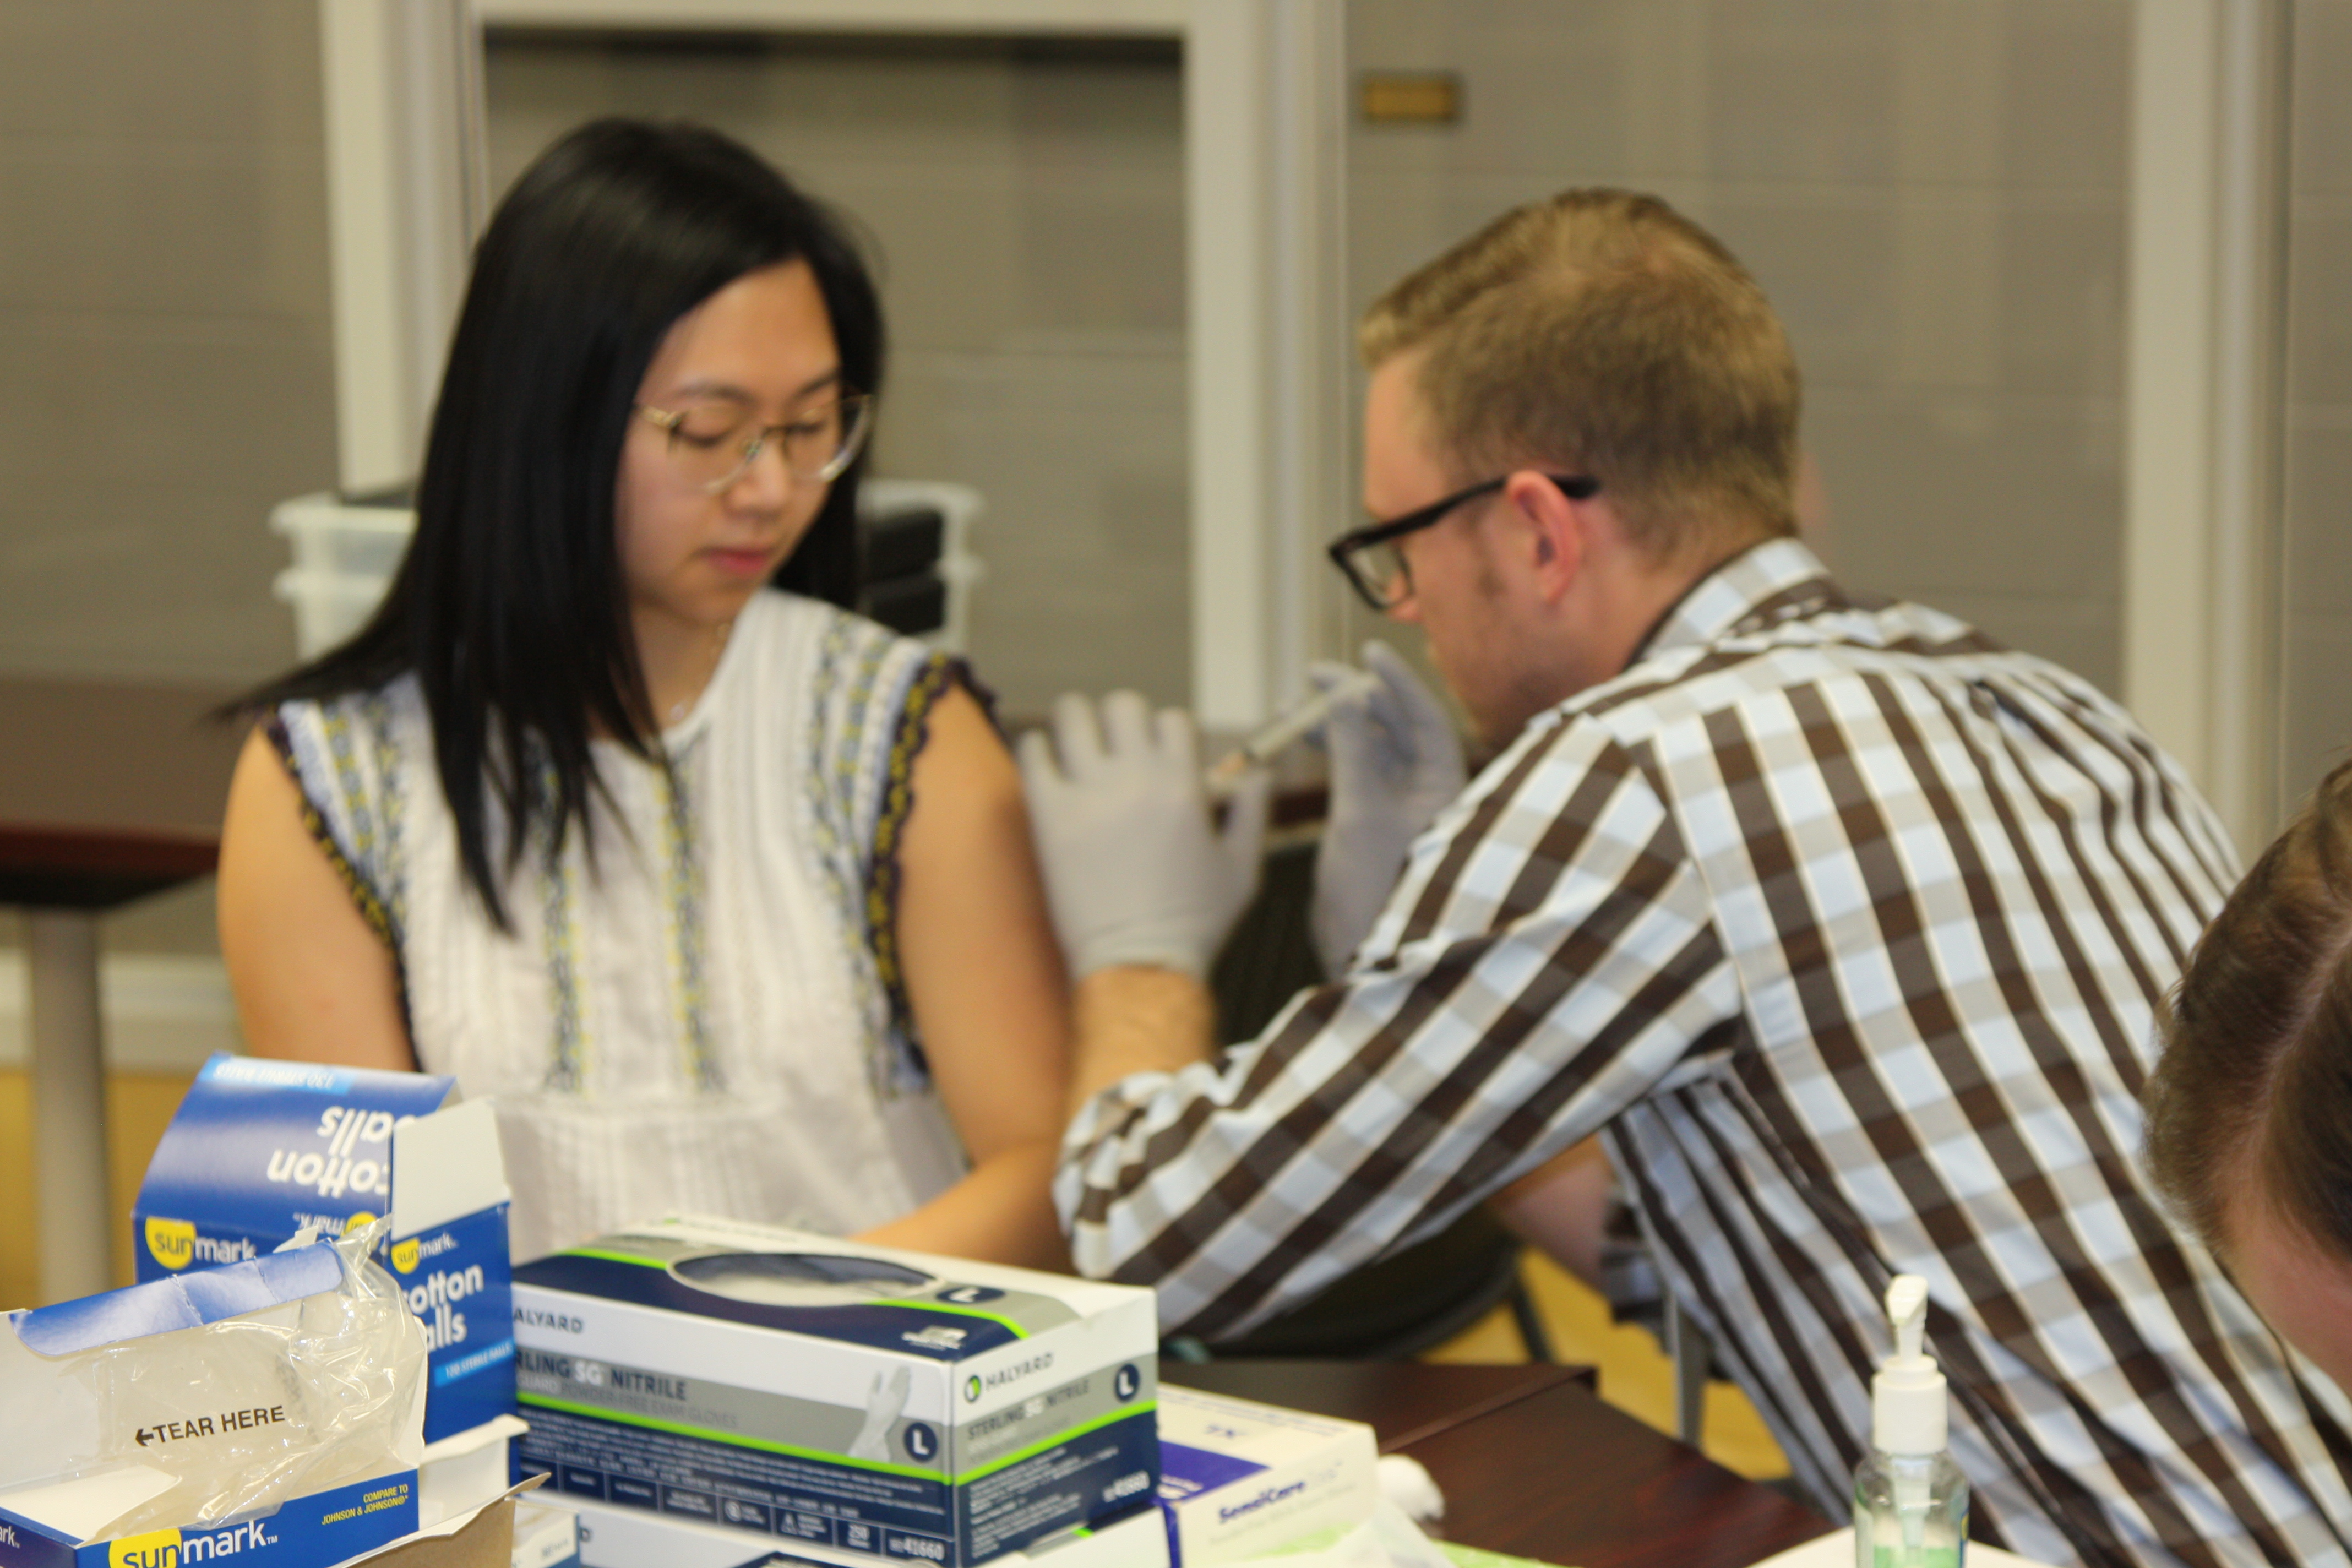 SNPhA Immunization Clinic at College of Medicine promotional image